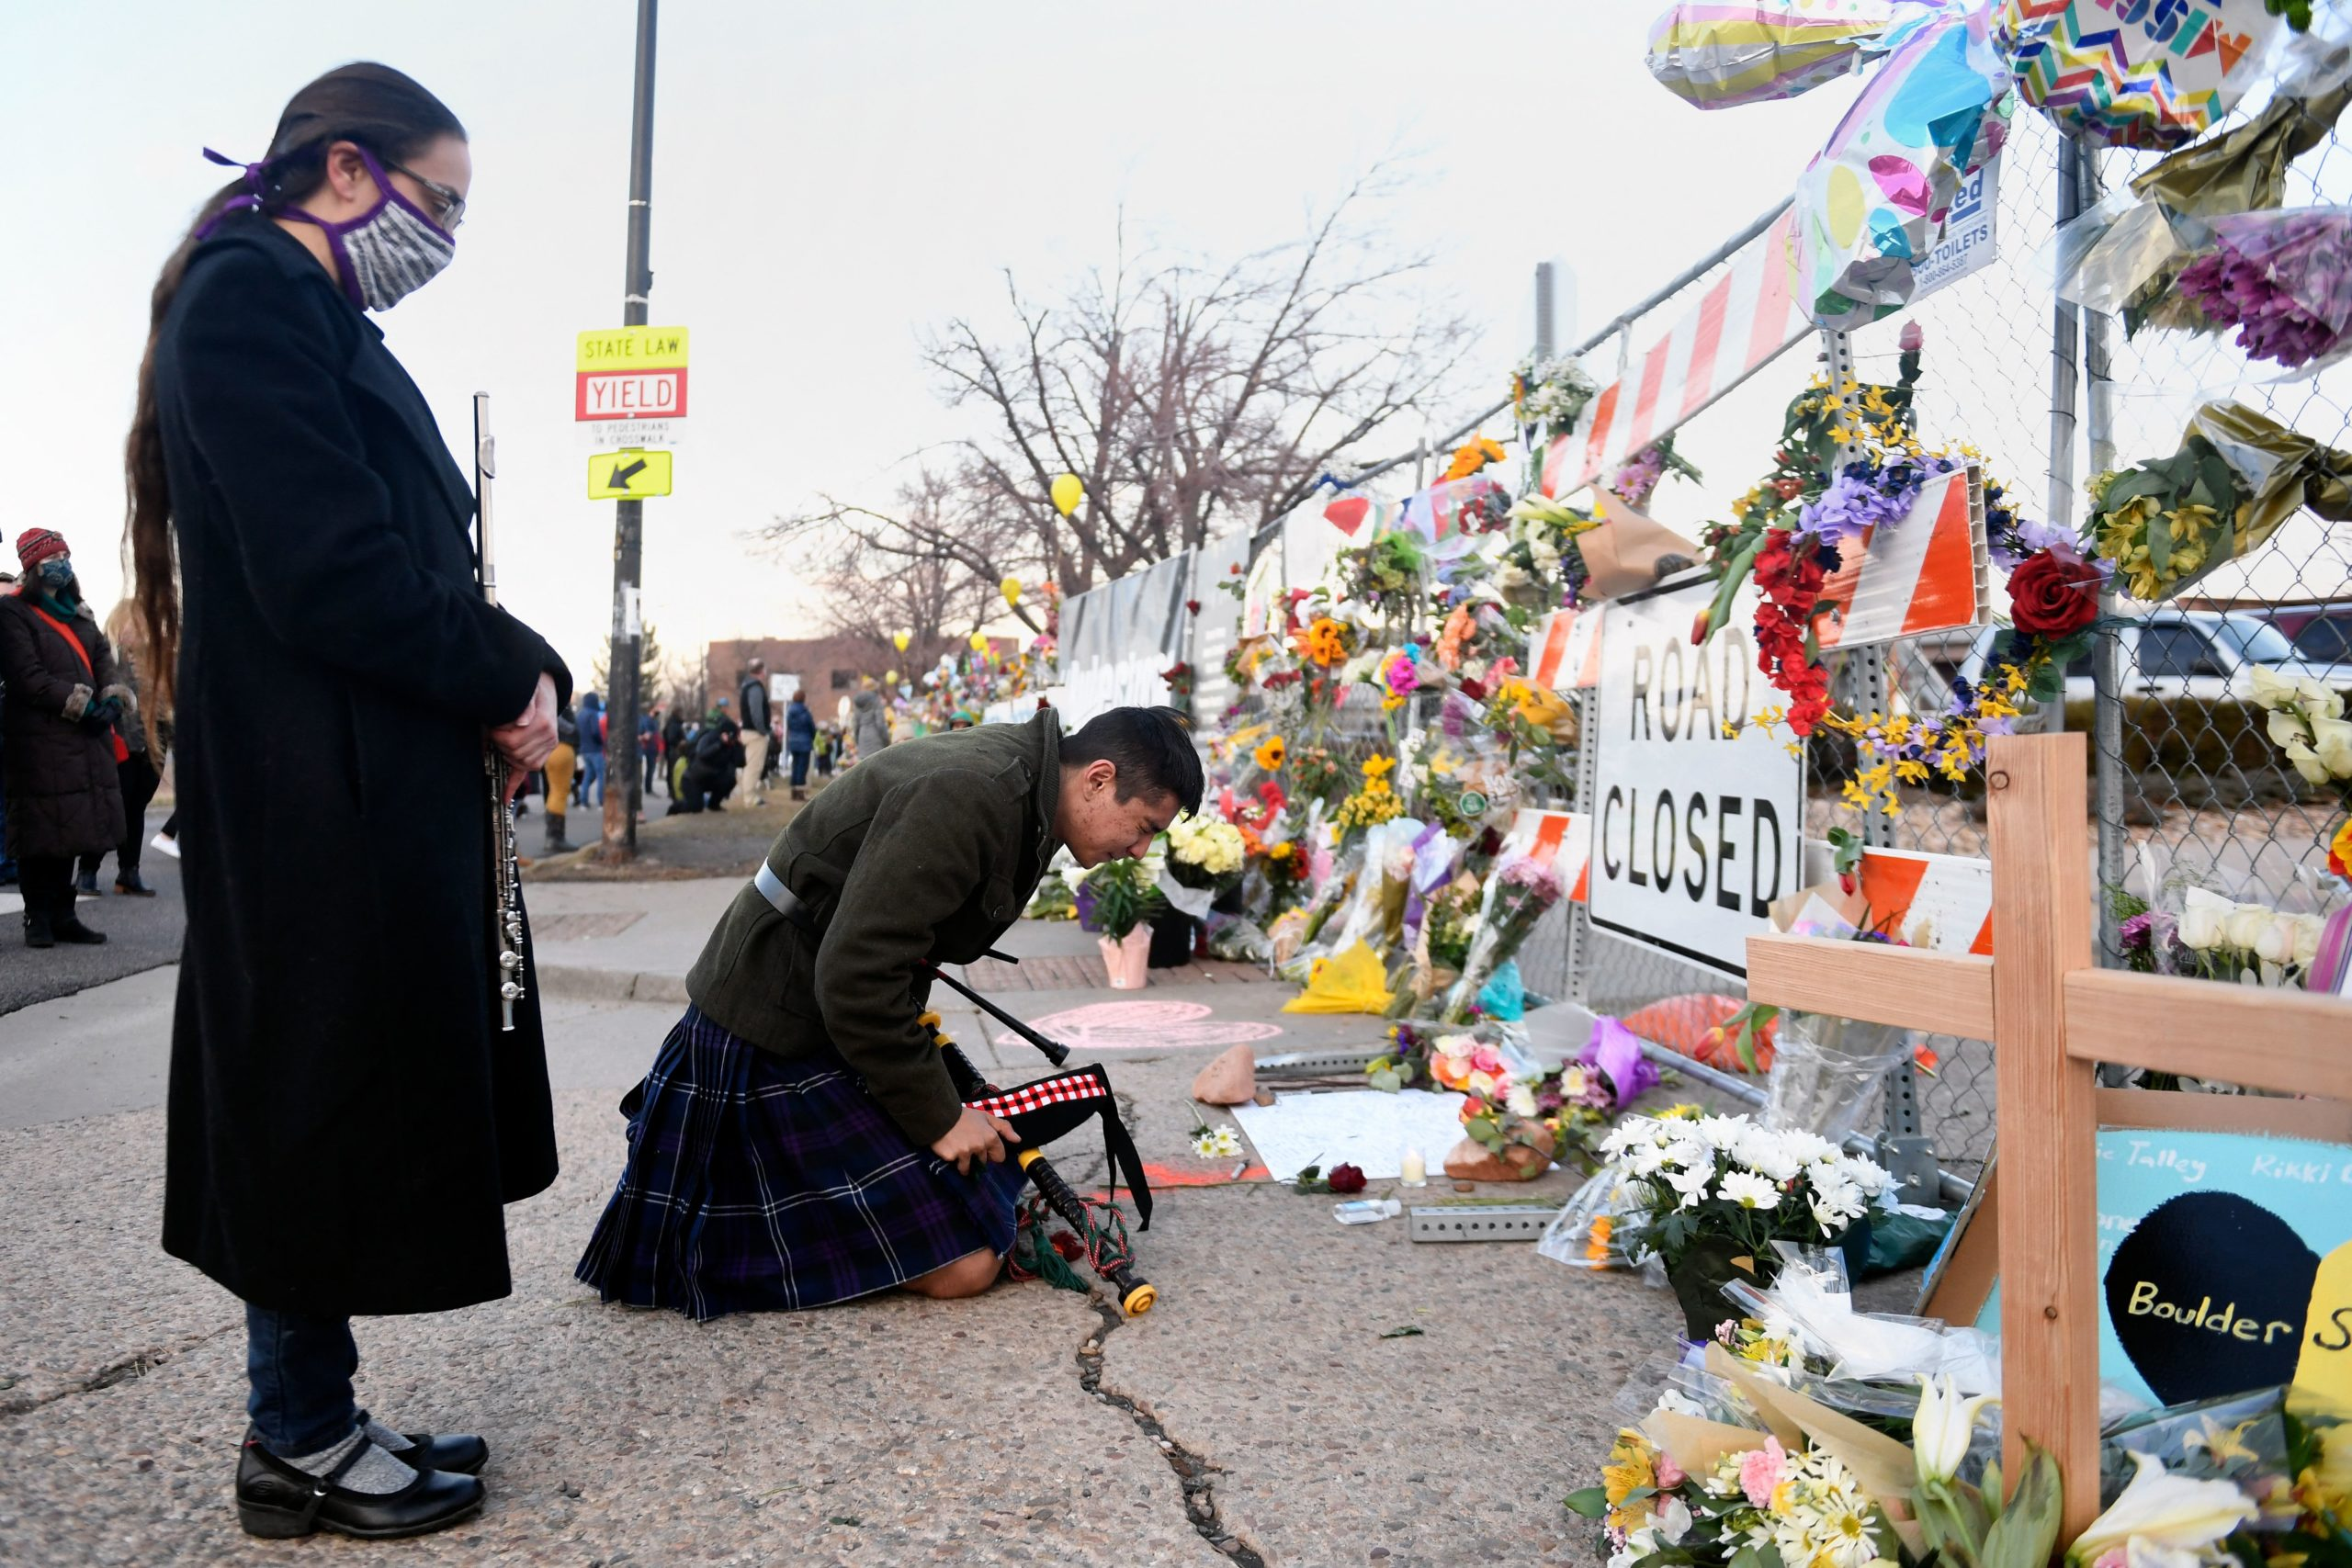 Geoffrey Nicosia (R) and Nikki Guillory reflect after playing music outside of a King Soopers grocery store in Boulder, Colorado on March 24, 2021, to honor the ten people killed during a mass shooting three days prior. (JASON CONNOLLY/AFP via Getty Images)